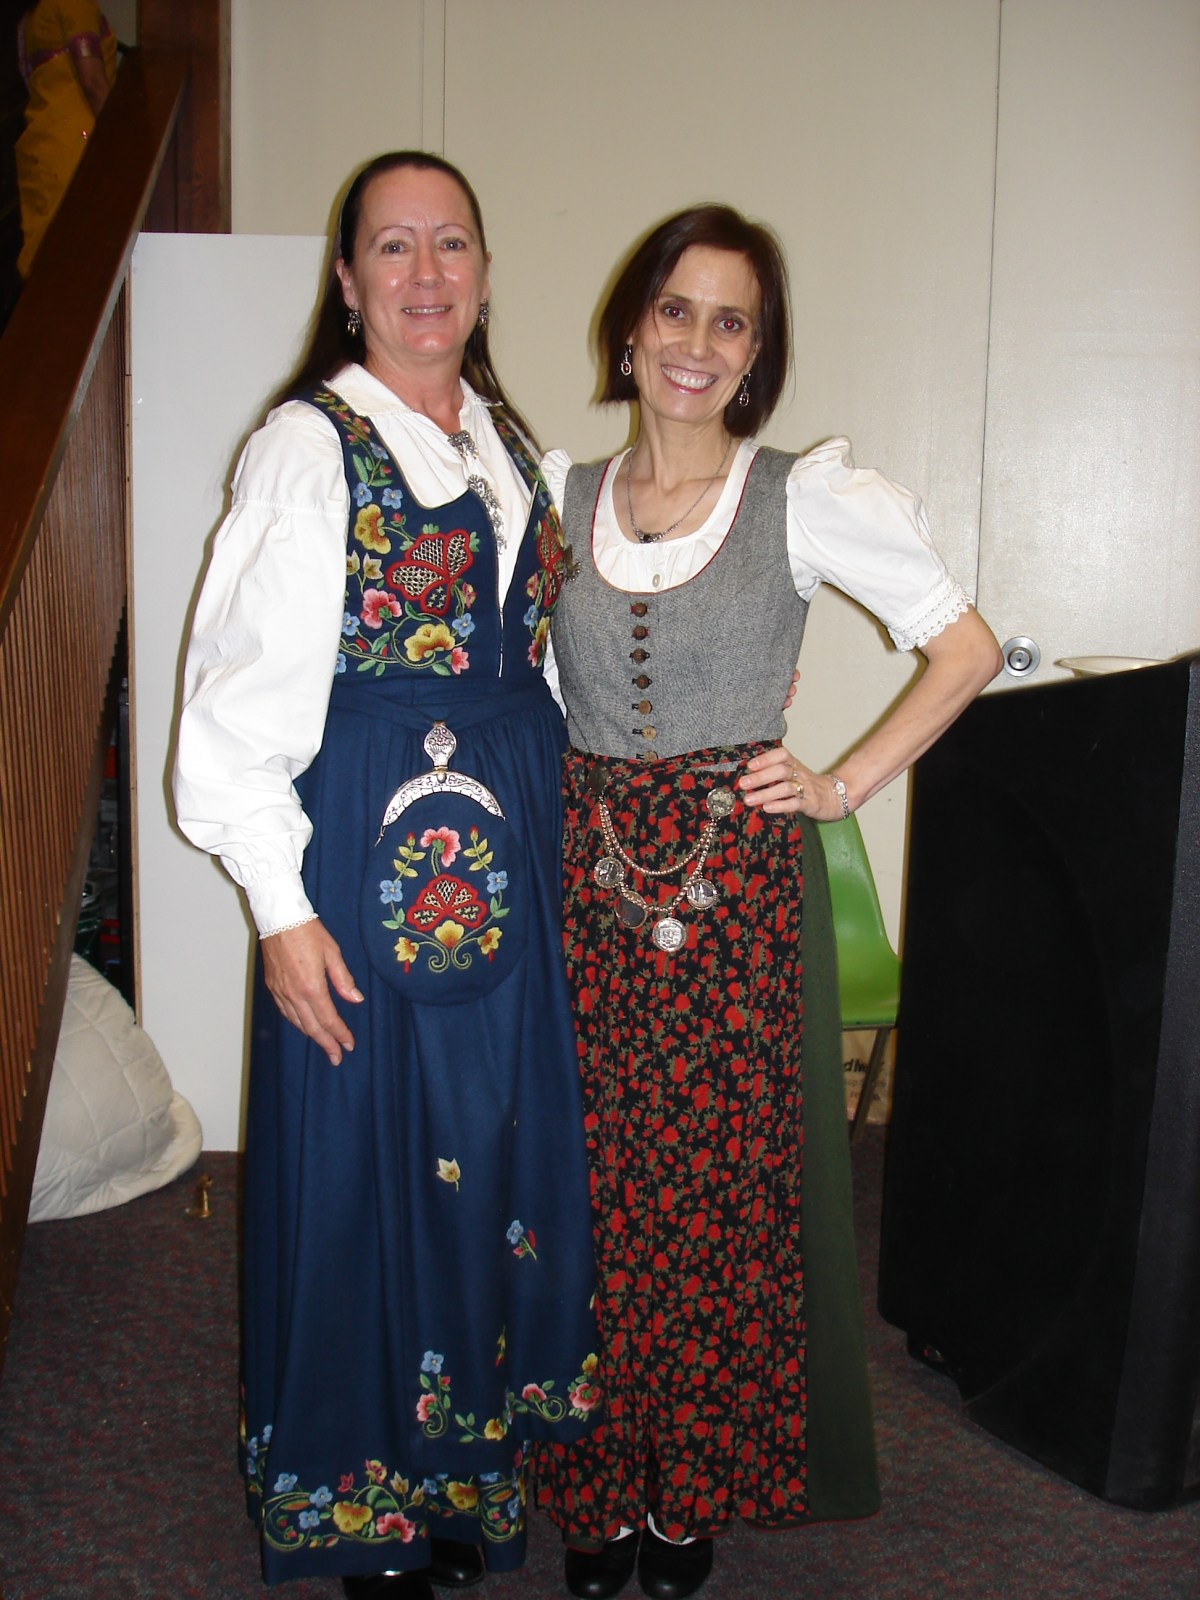 women in dirndls of different heritage dressed up in traditional clothing for a dinning event